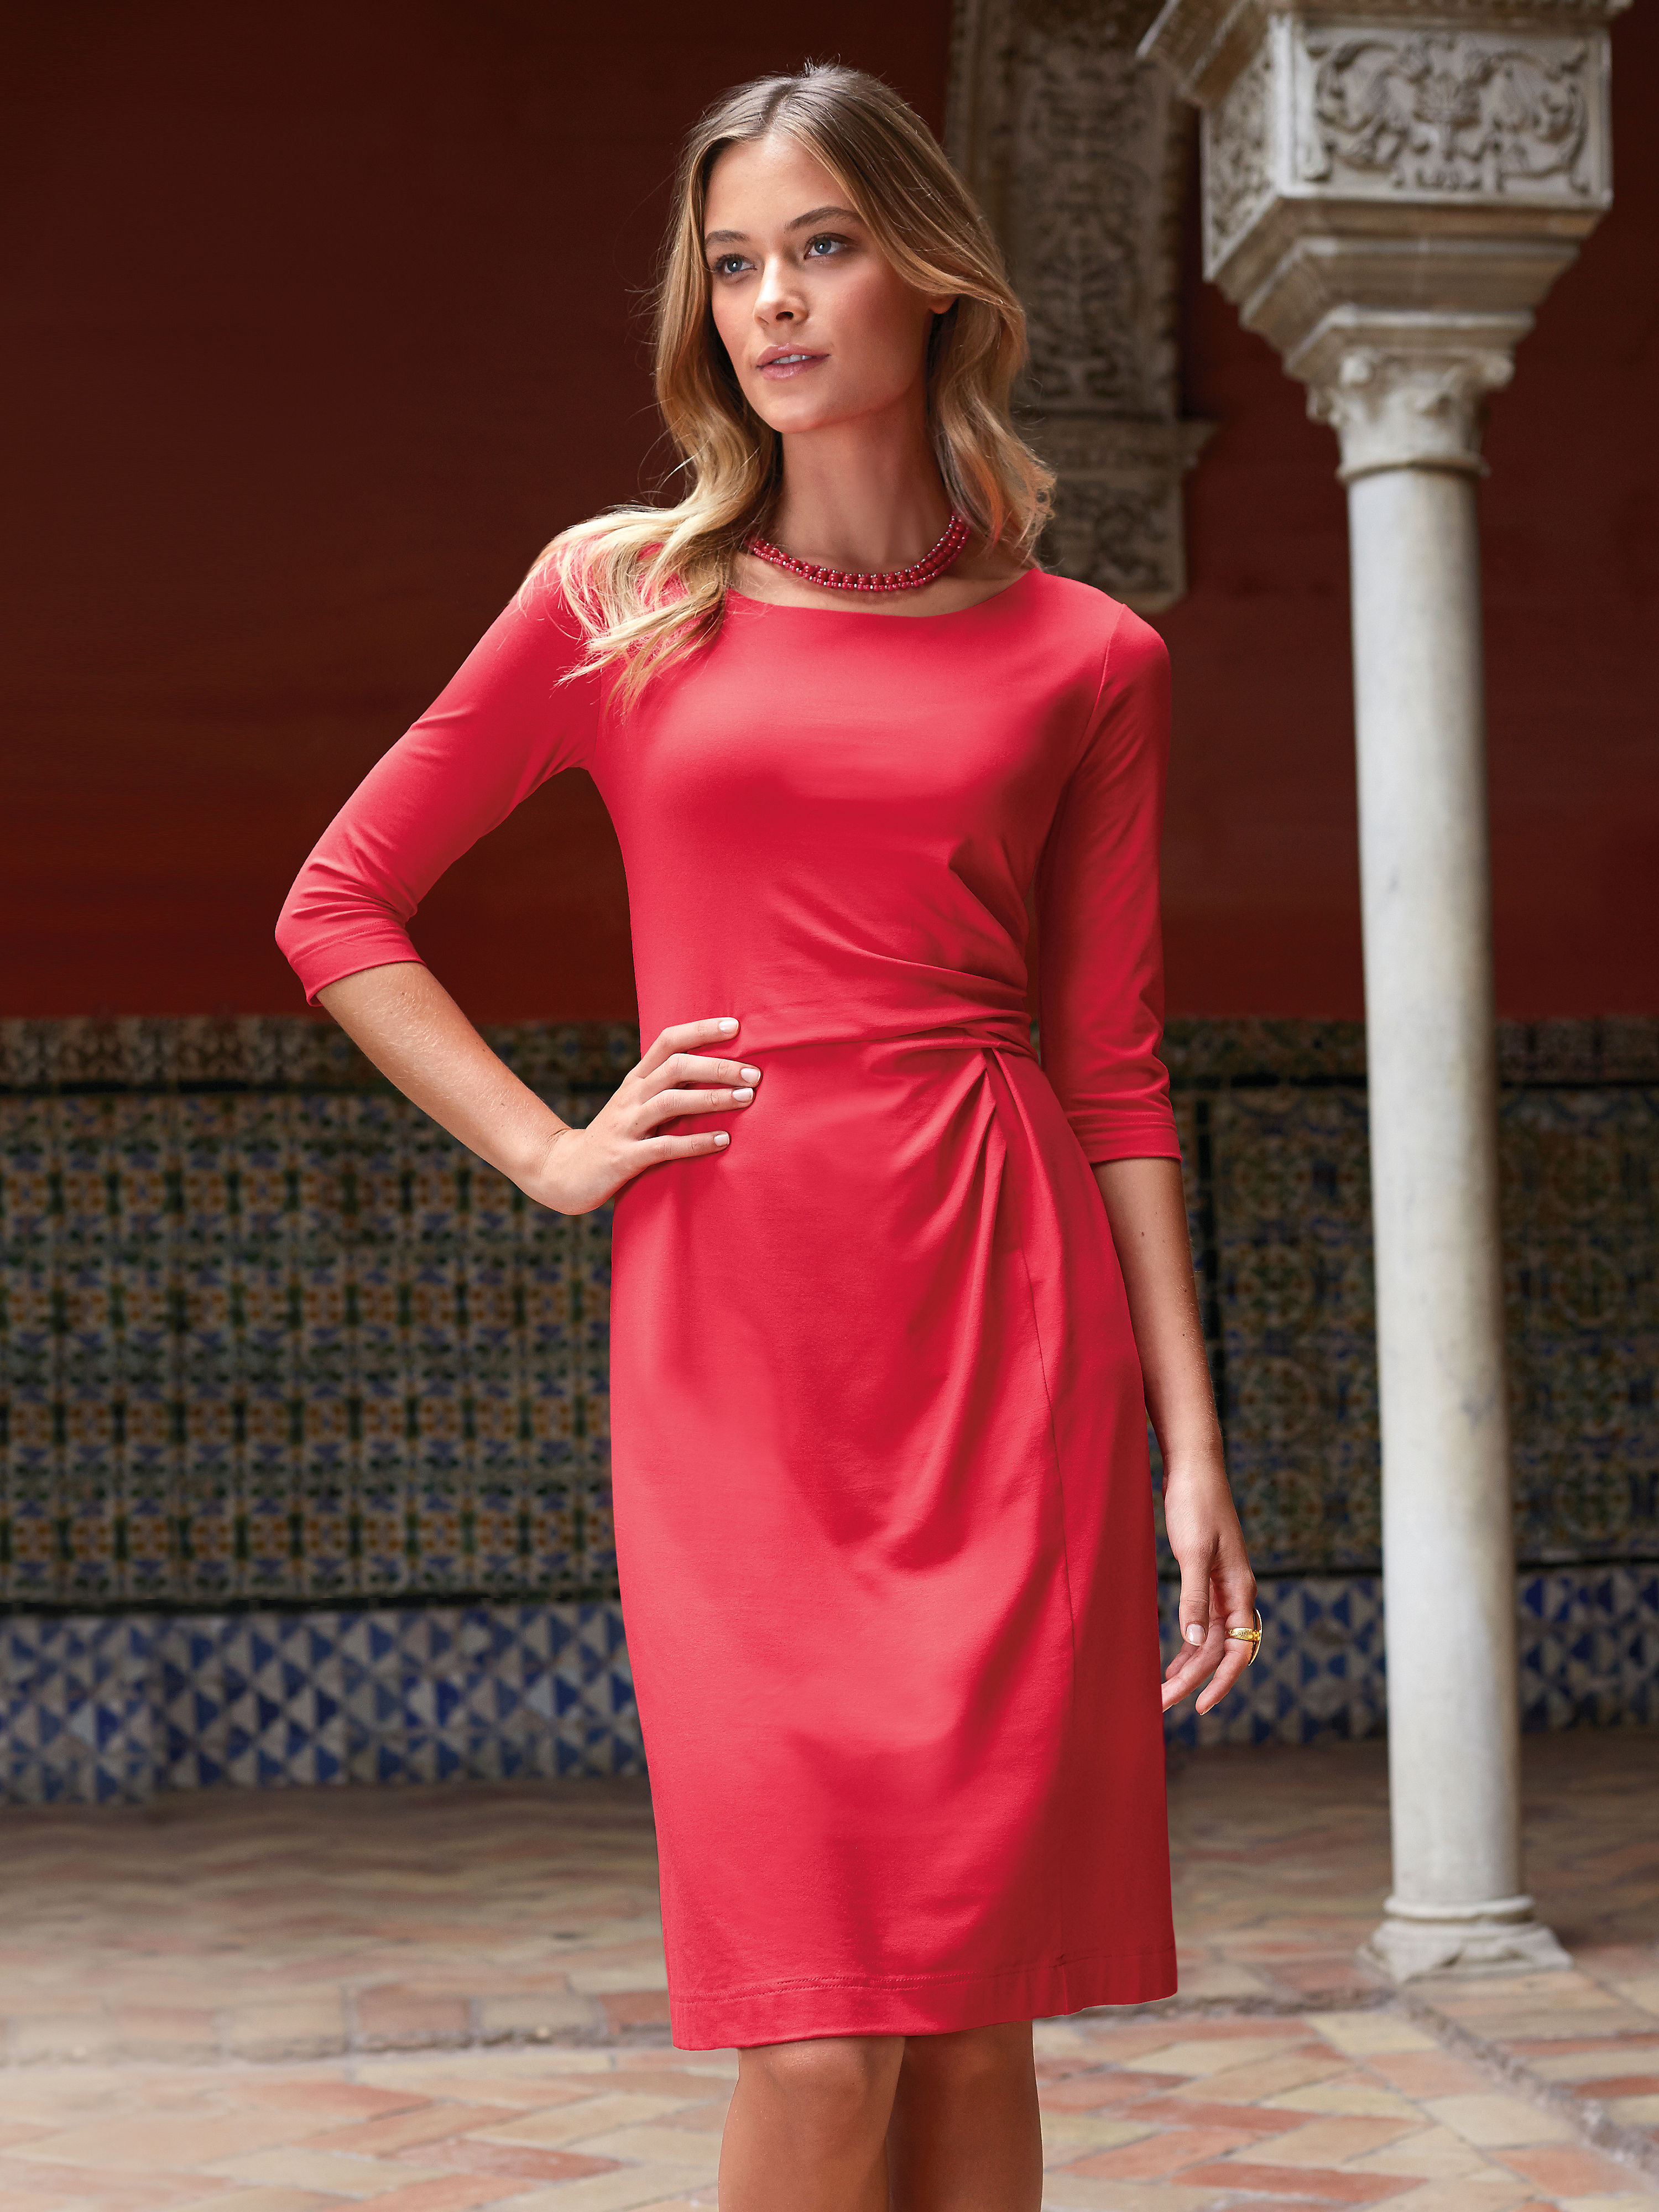 b73282efd16 Jersey dress with 3 4-length sleeves Uta Raasch red size  10